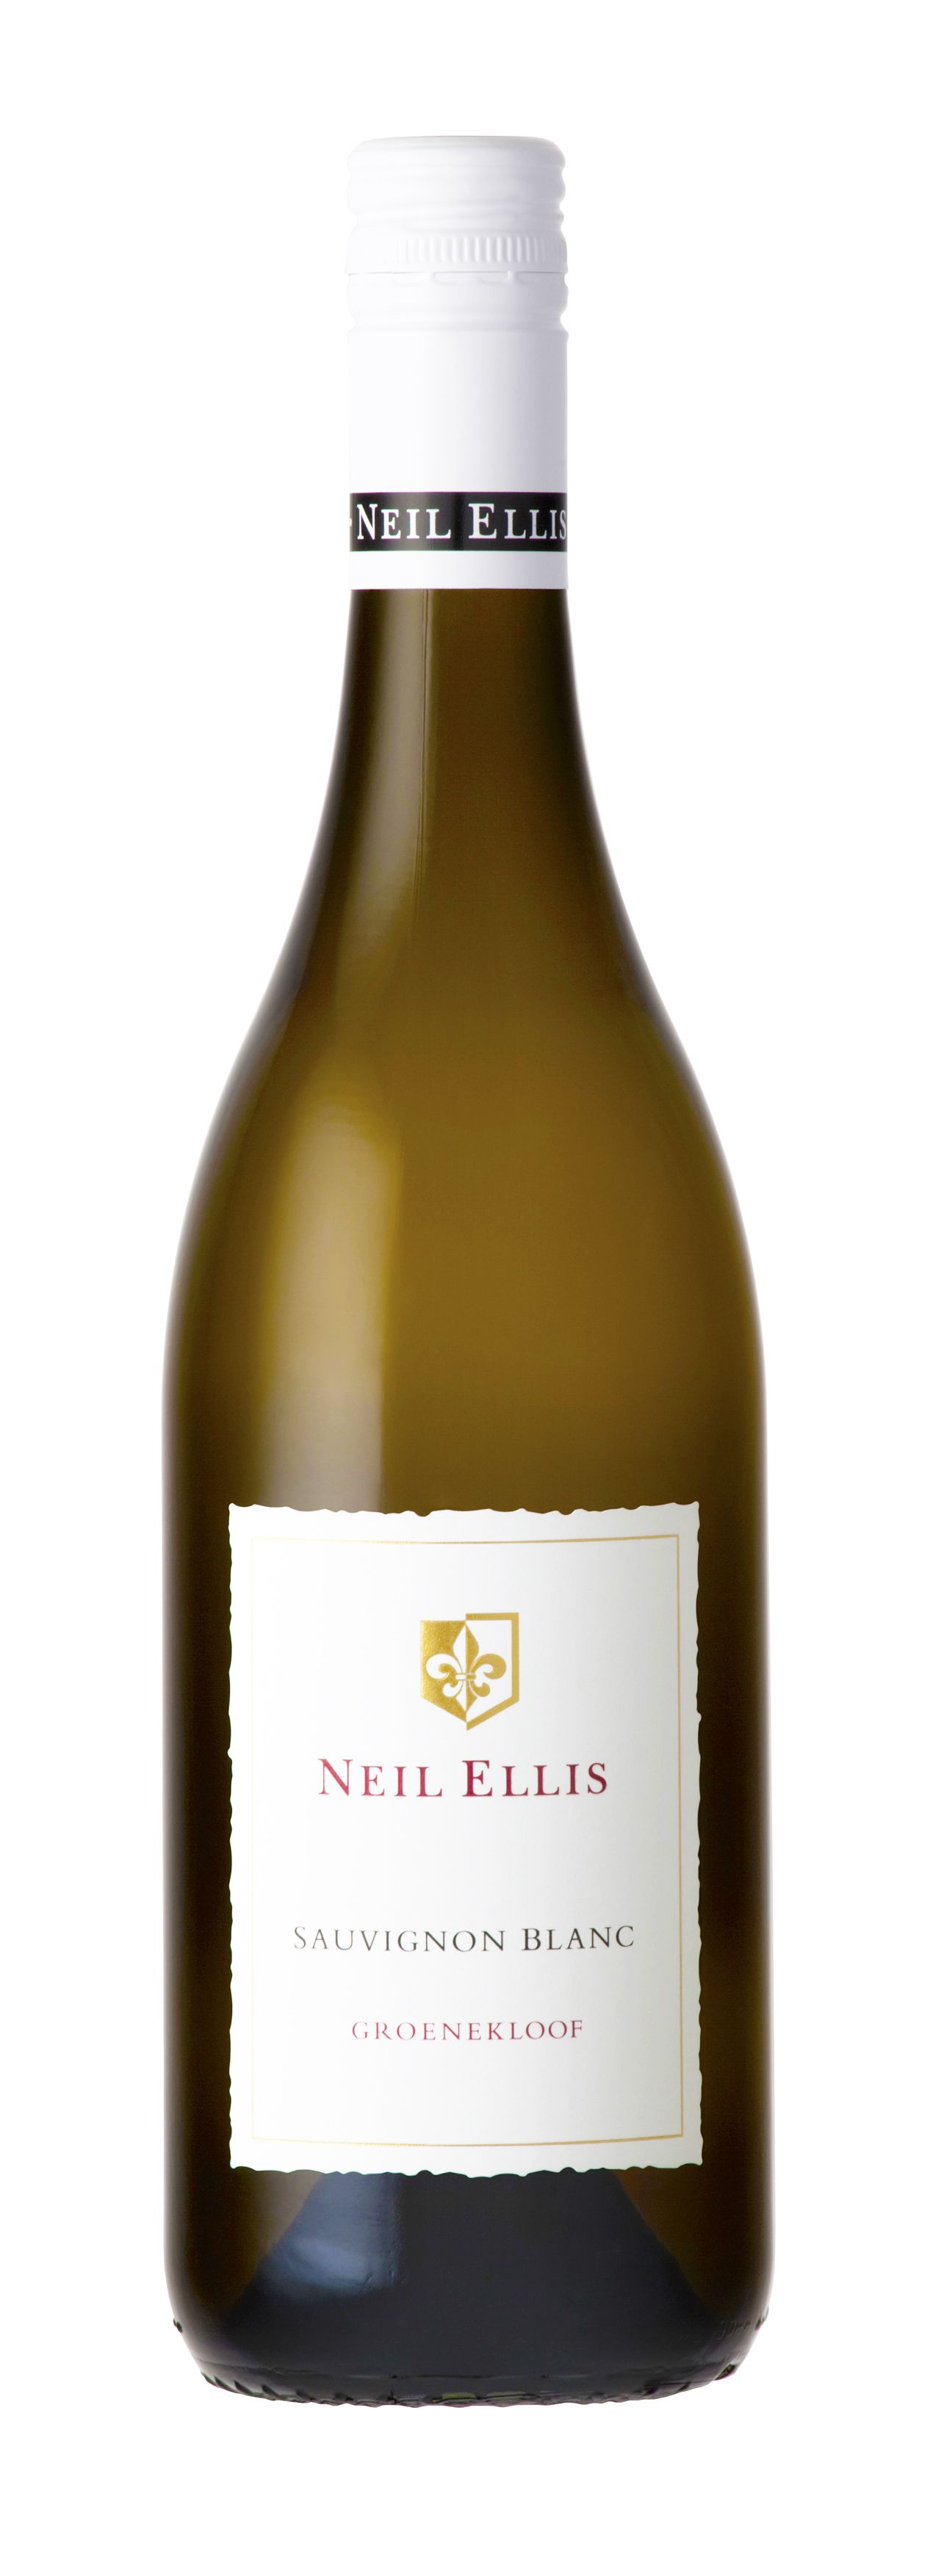 Our Neil Ellis Groenkloof Sauvignon Blanc 2011 chosen by the Wine Spectator as one of the 100 Outstanding Value Wines!